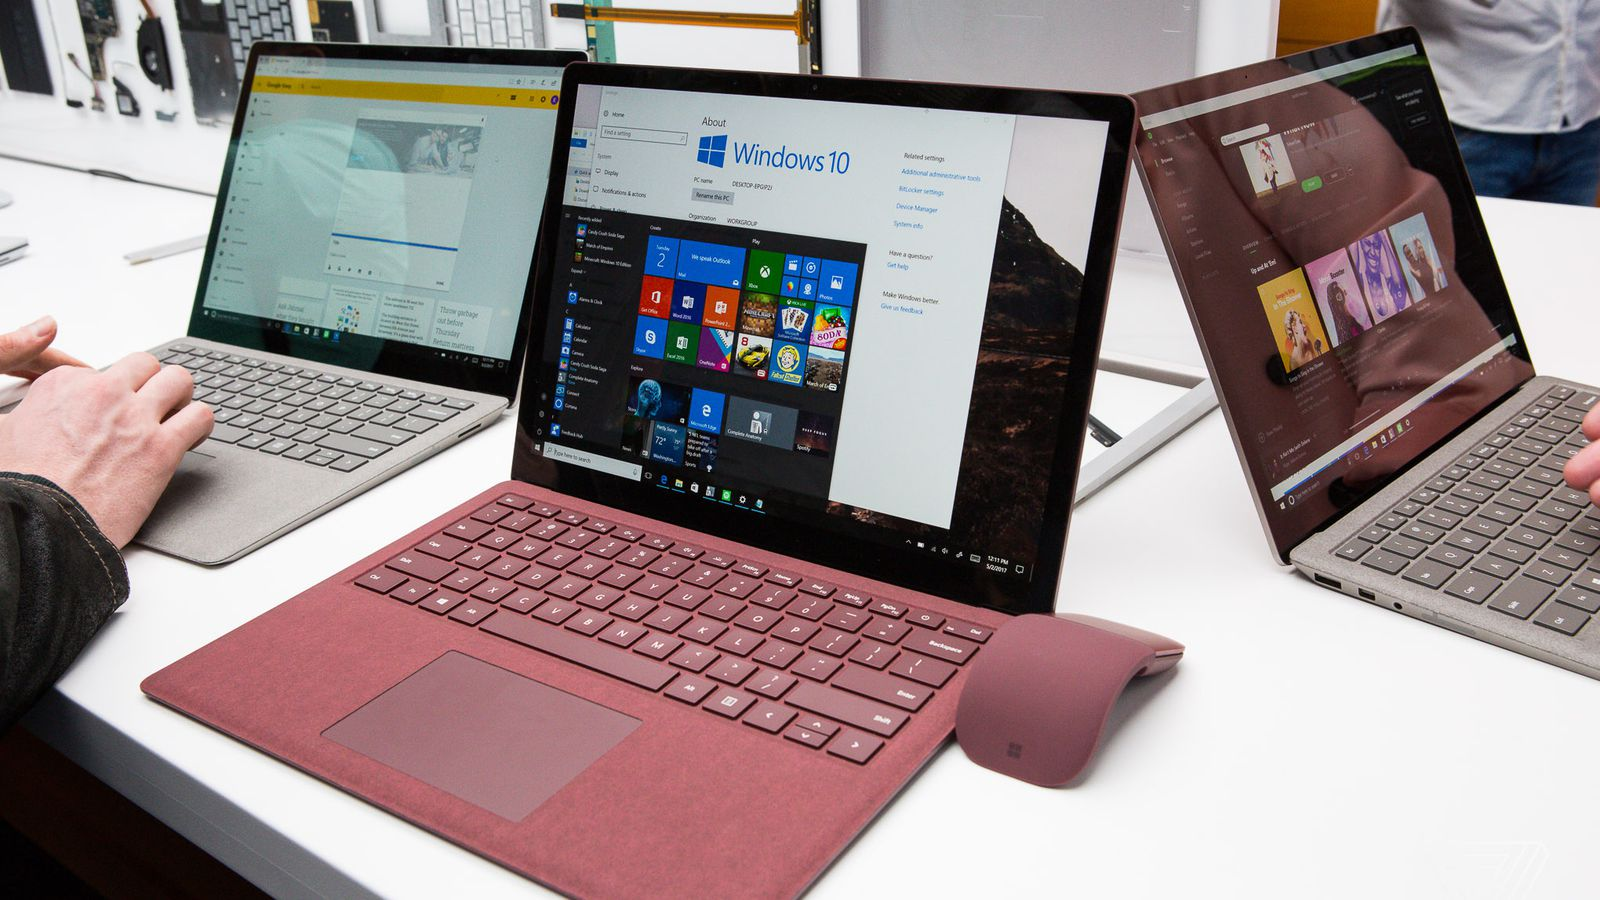 Surface Laptop Owners Can Upgrade To Windows 10 Pro For